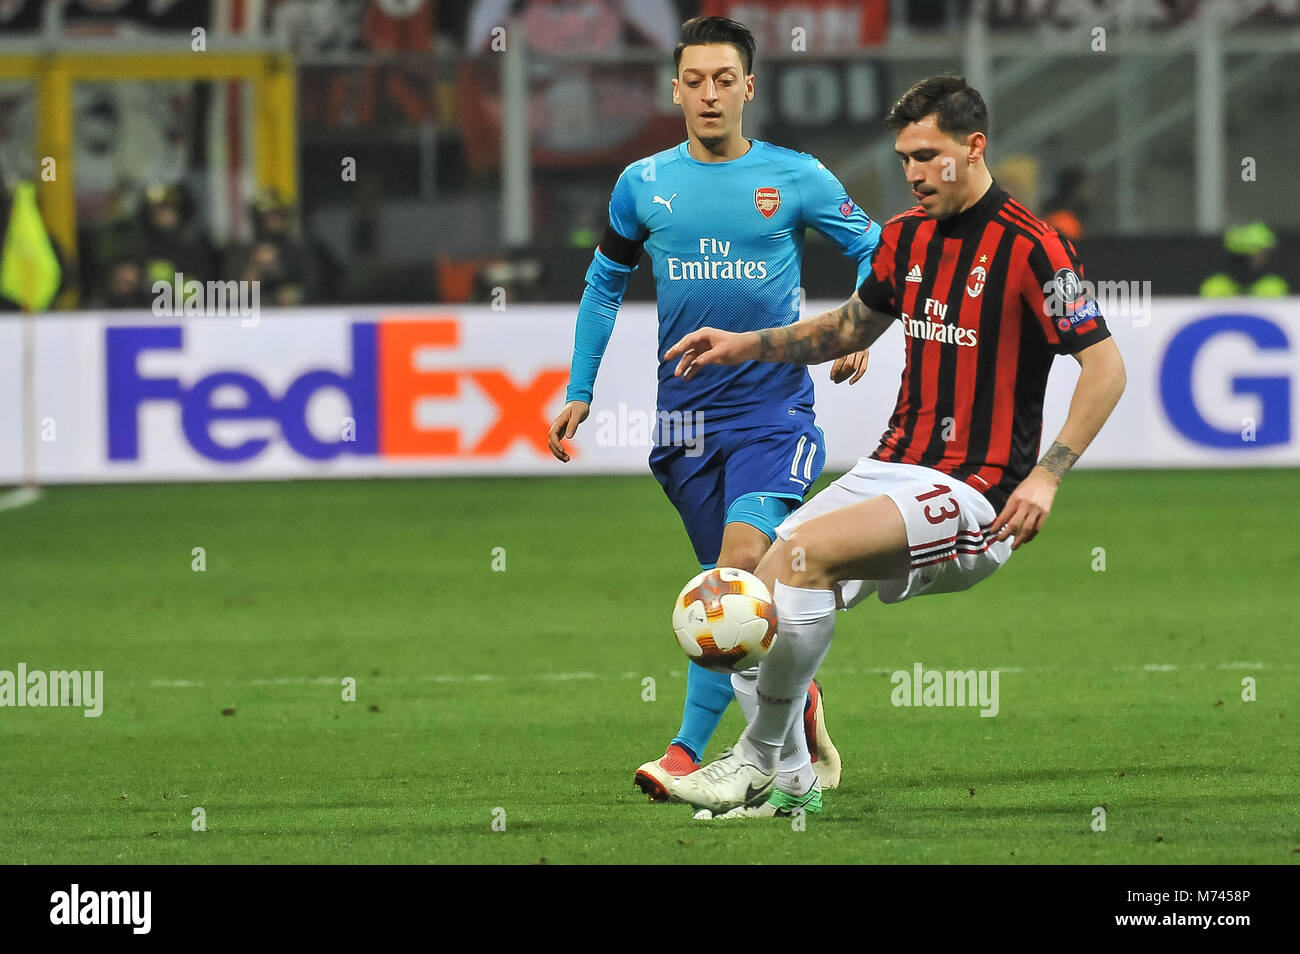 Milan, Italy. 8th March, 2018. Alessio Romagnoli (AC Milan) during the match UEFA Europa League between AC Milan Stock Photo